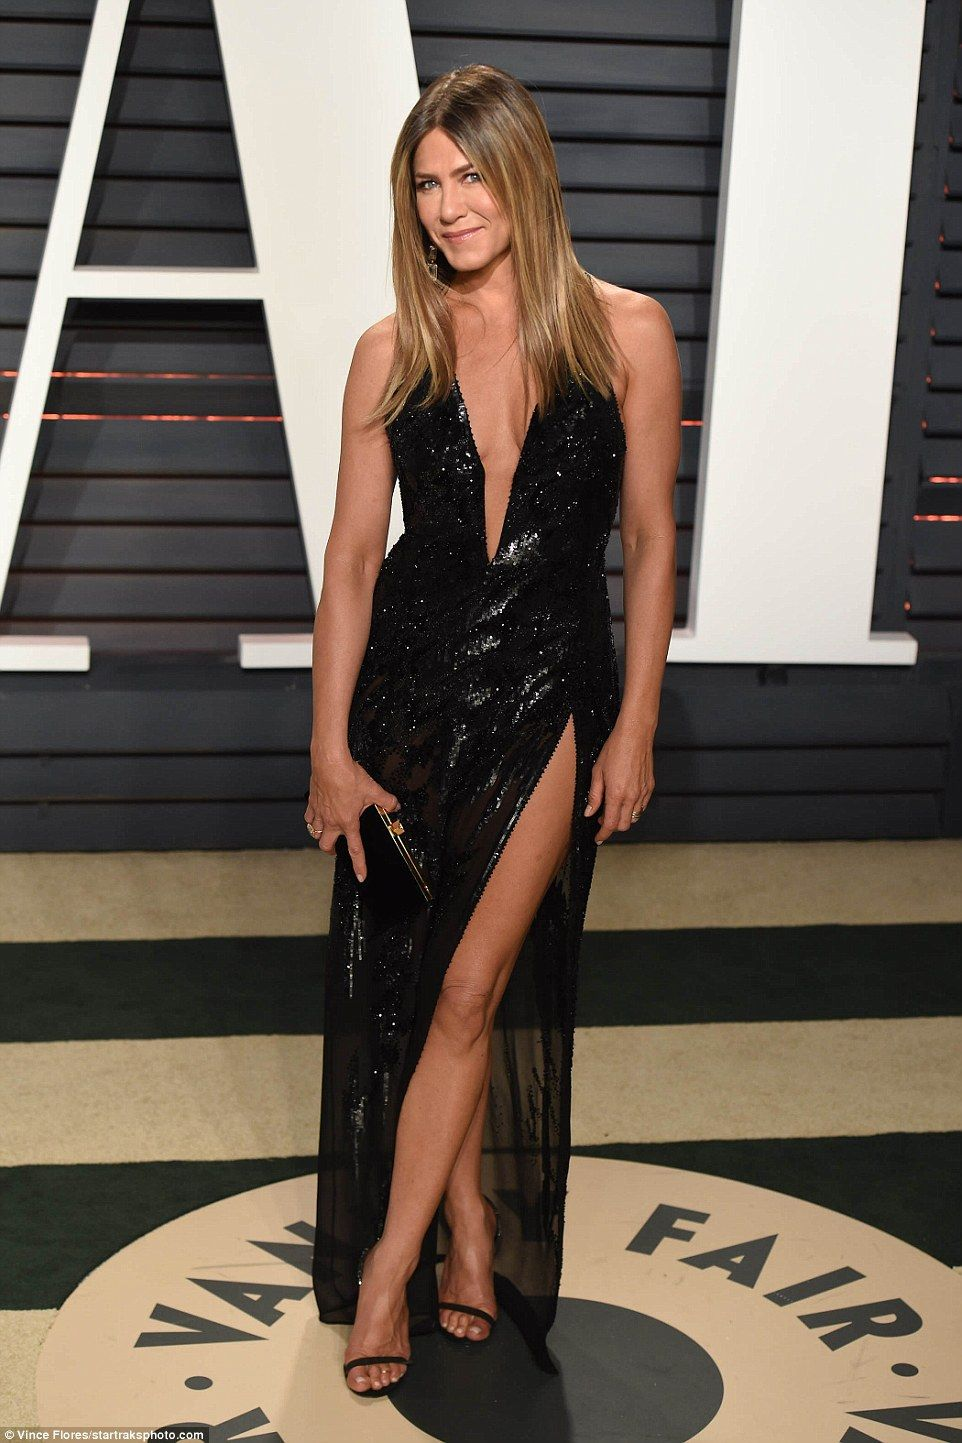 Discussion on this topic: A First Look at Jennifer Aniston's (Super-Sparkly) , a-first-look-at-jennifer-anistons-super-sparkly/